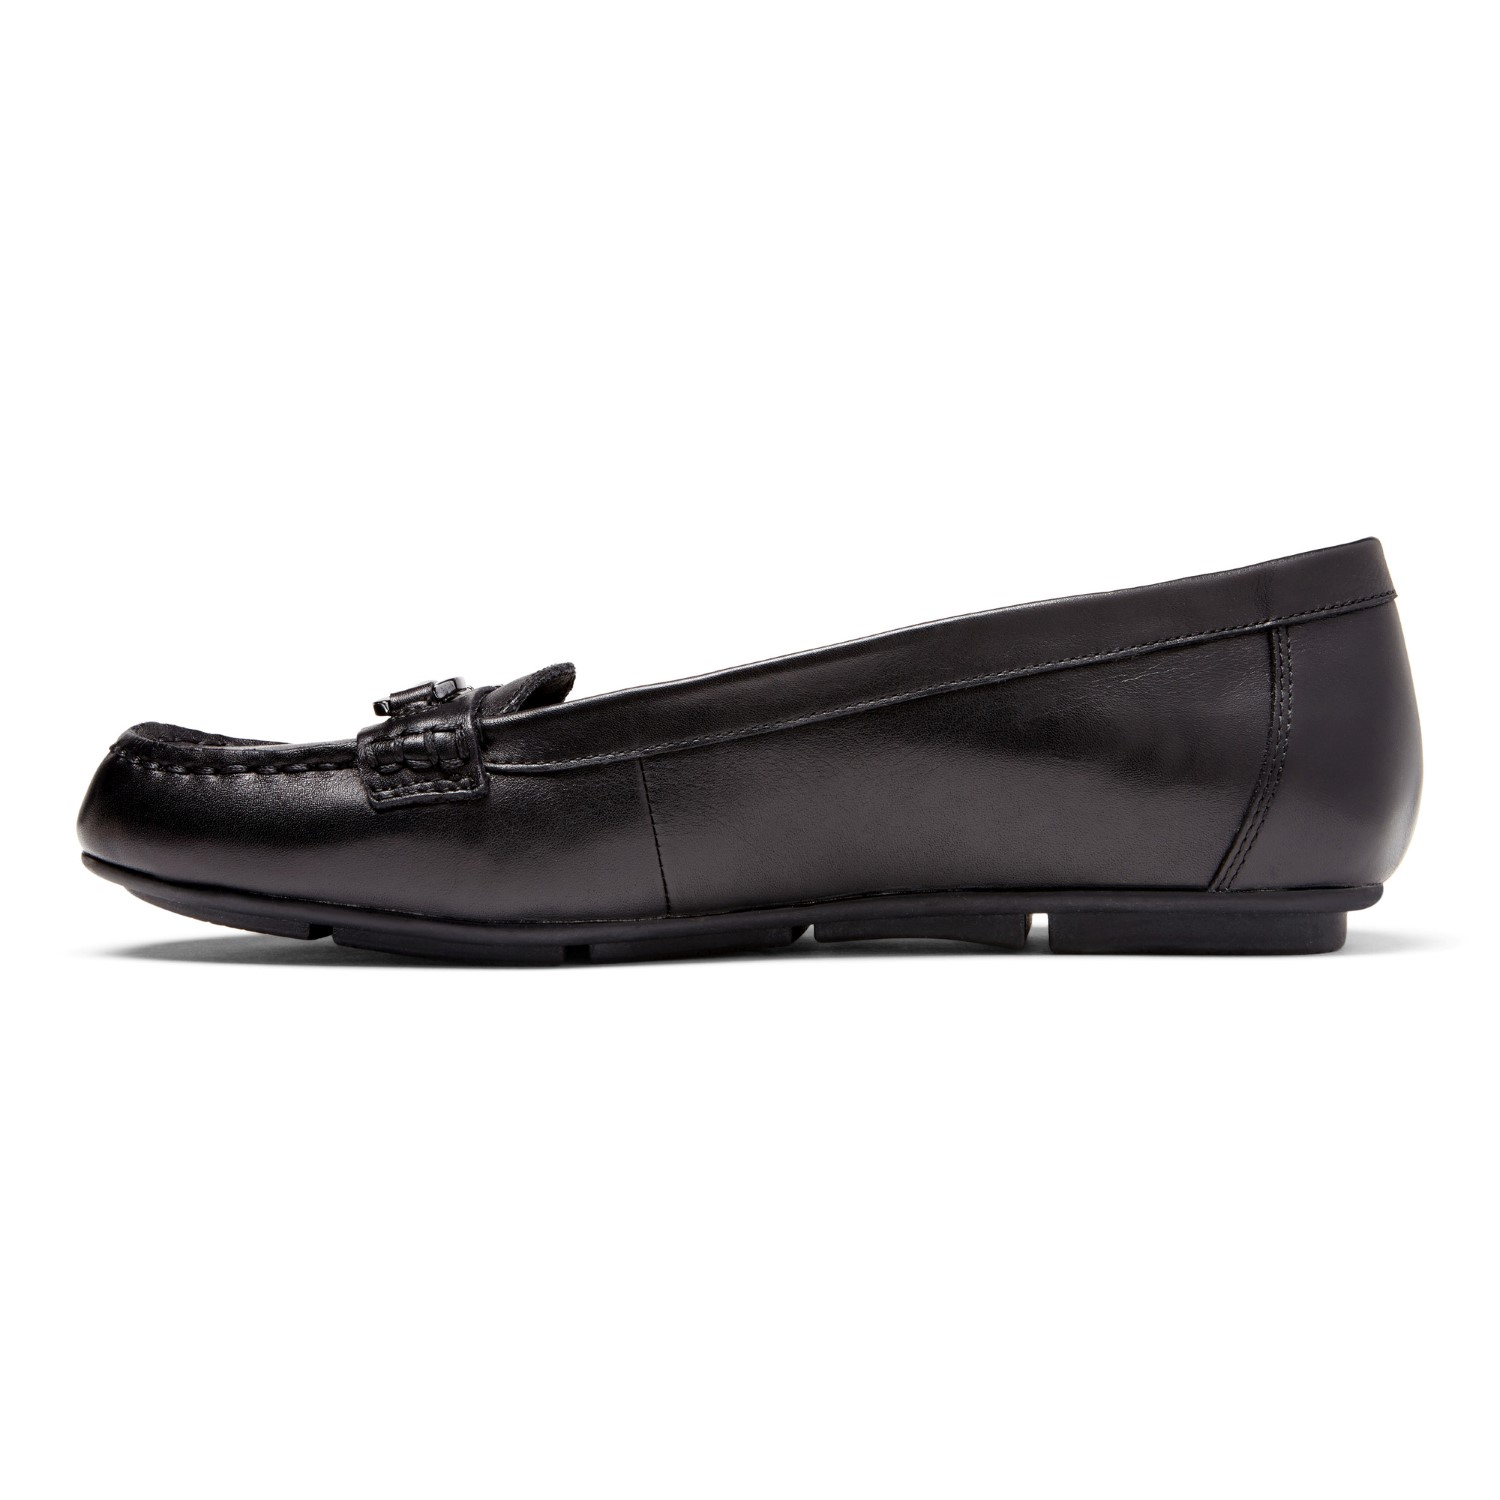 ec57df3af65 Vionic Chill Kenya - Women s Supportive Loafers - Black - 2 left view